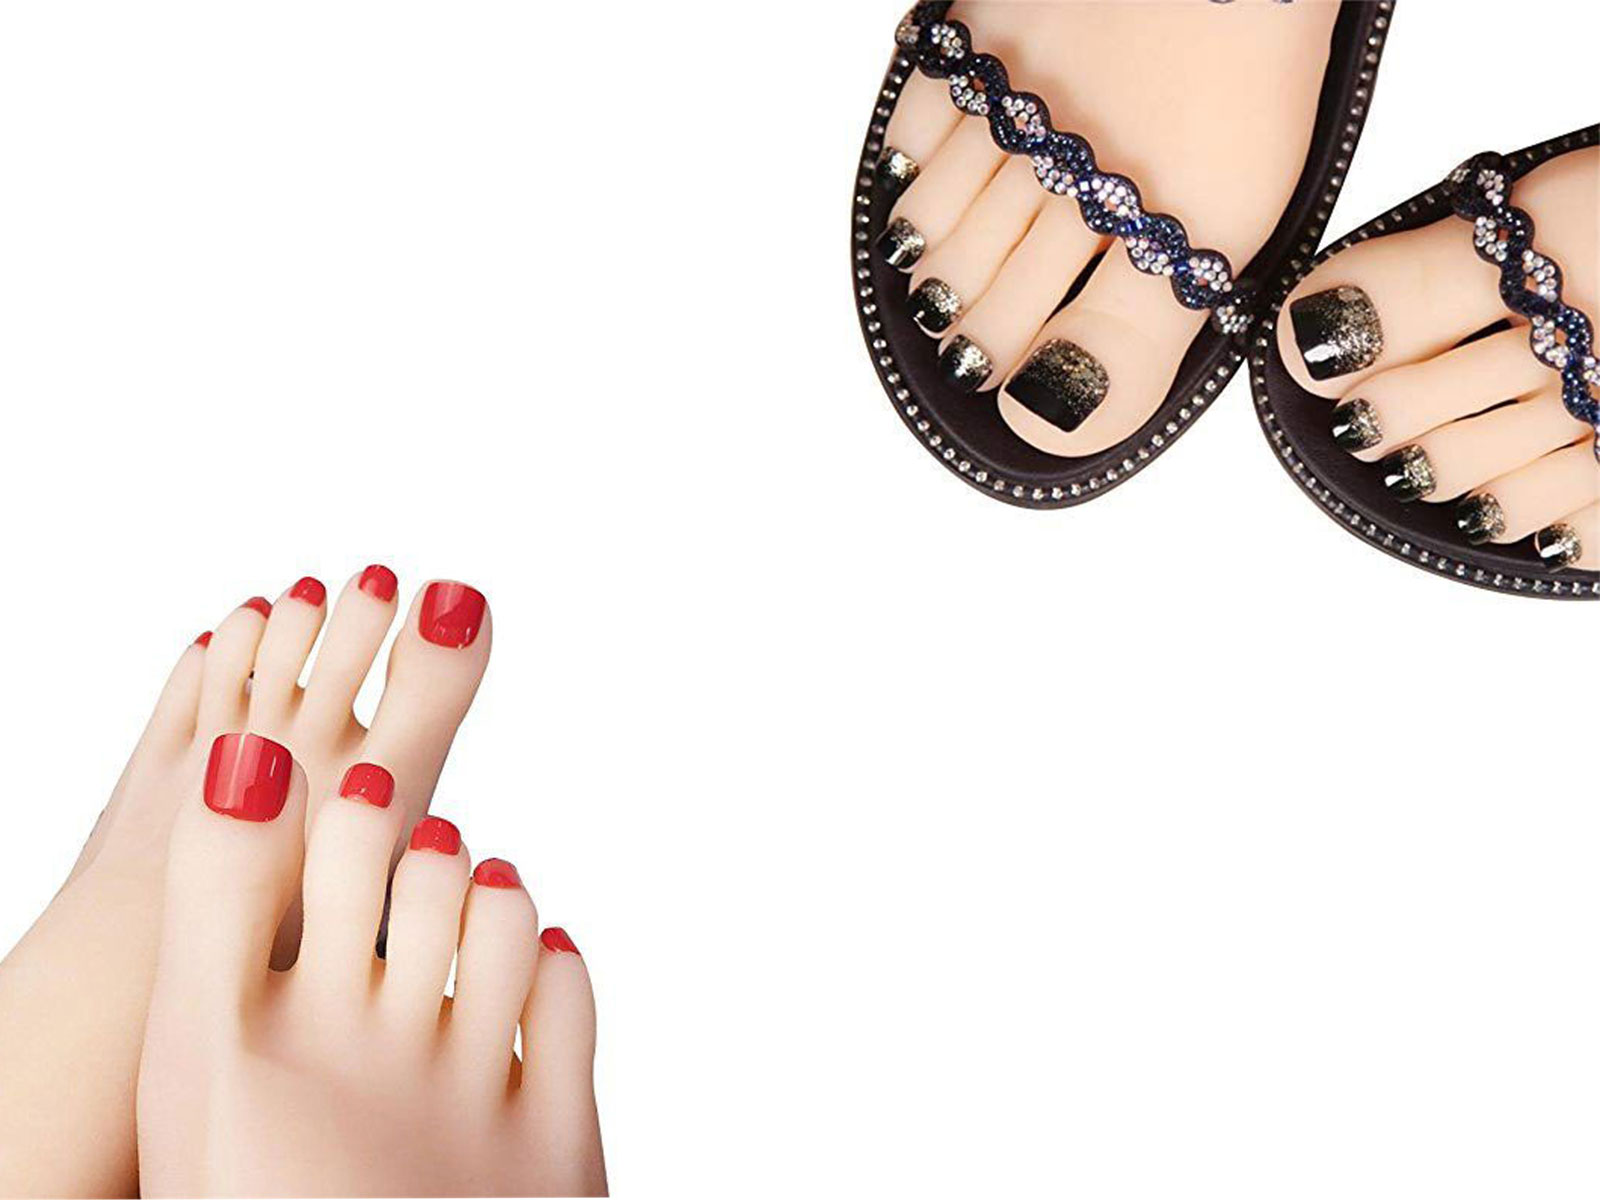 Halloween-Themed-Toe-Nails-Art-Stickers-Decals-Designs-Ideas-2019-F